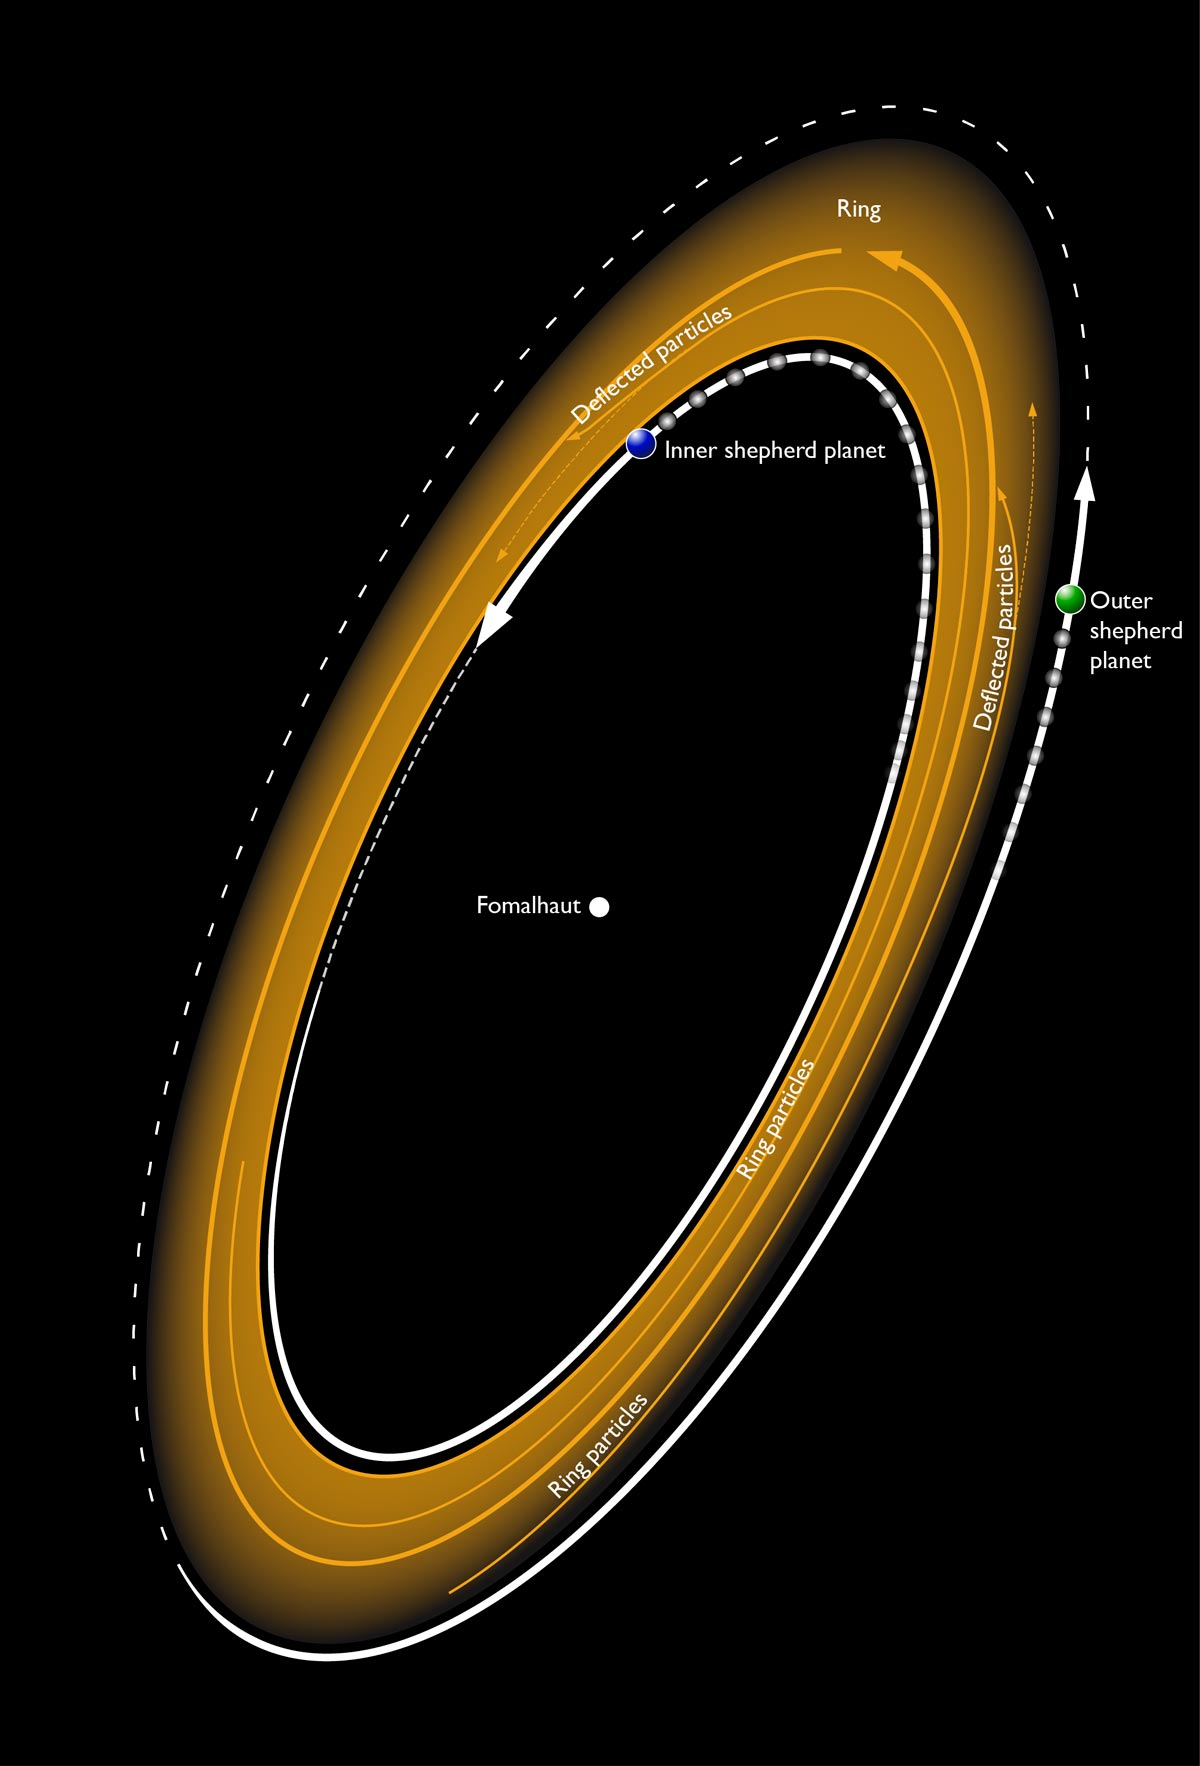 Illustration of a ring formed by planets around nearby star Fomalhaut.